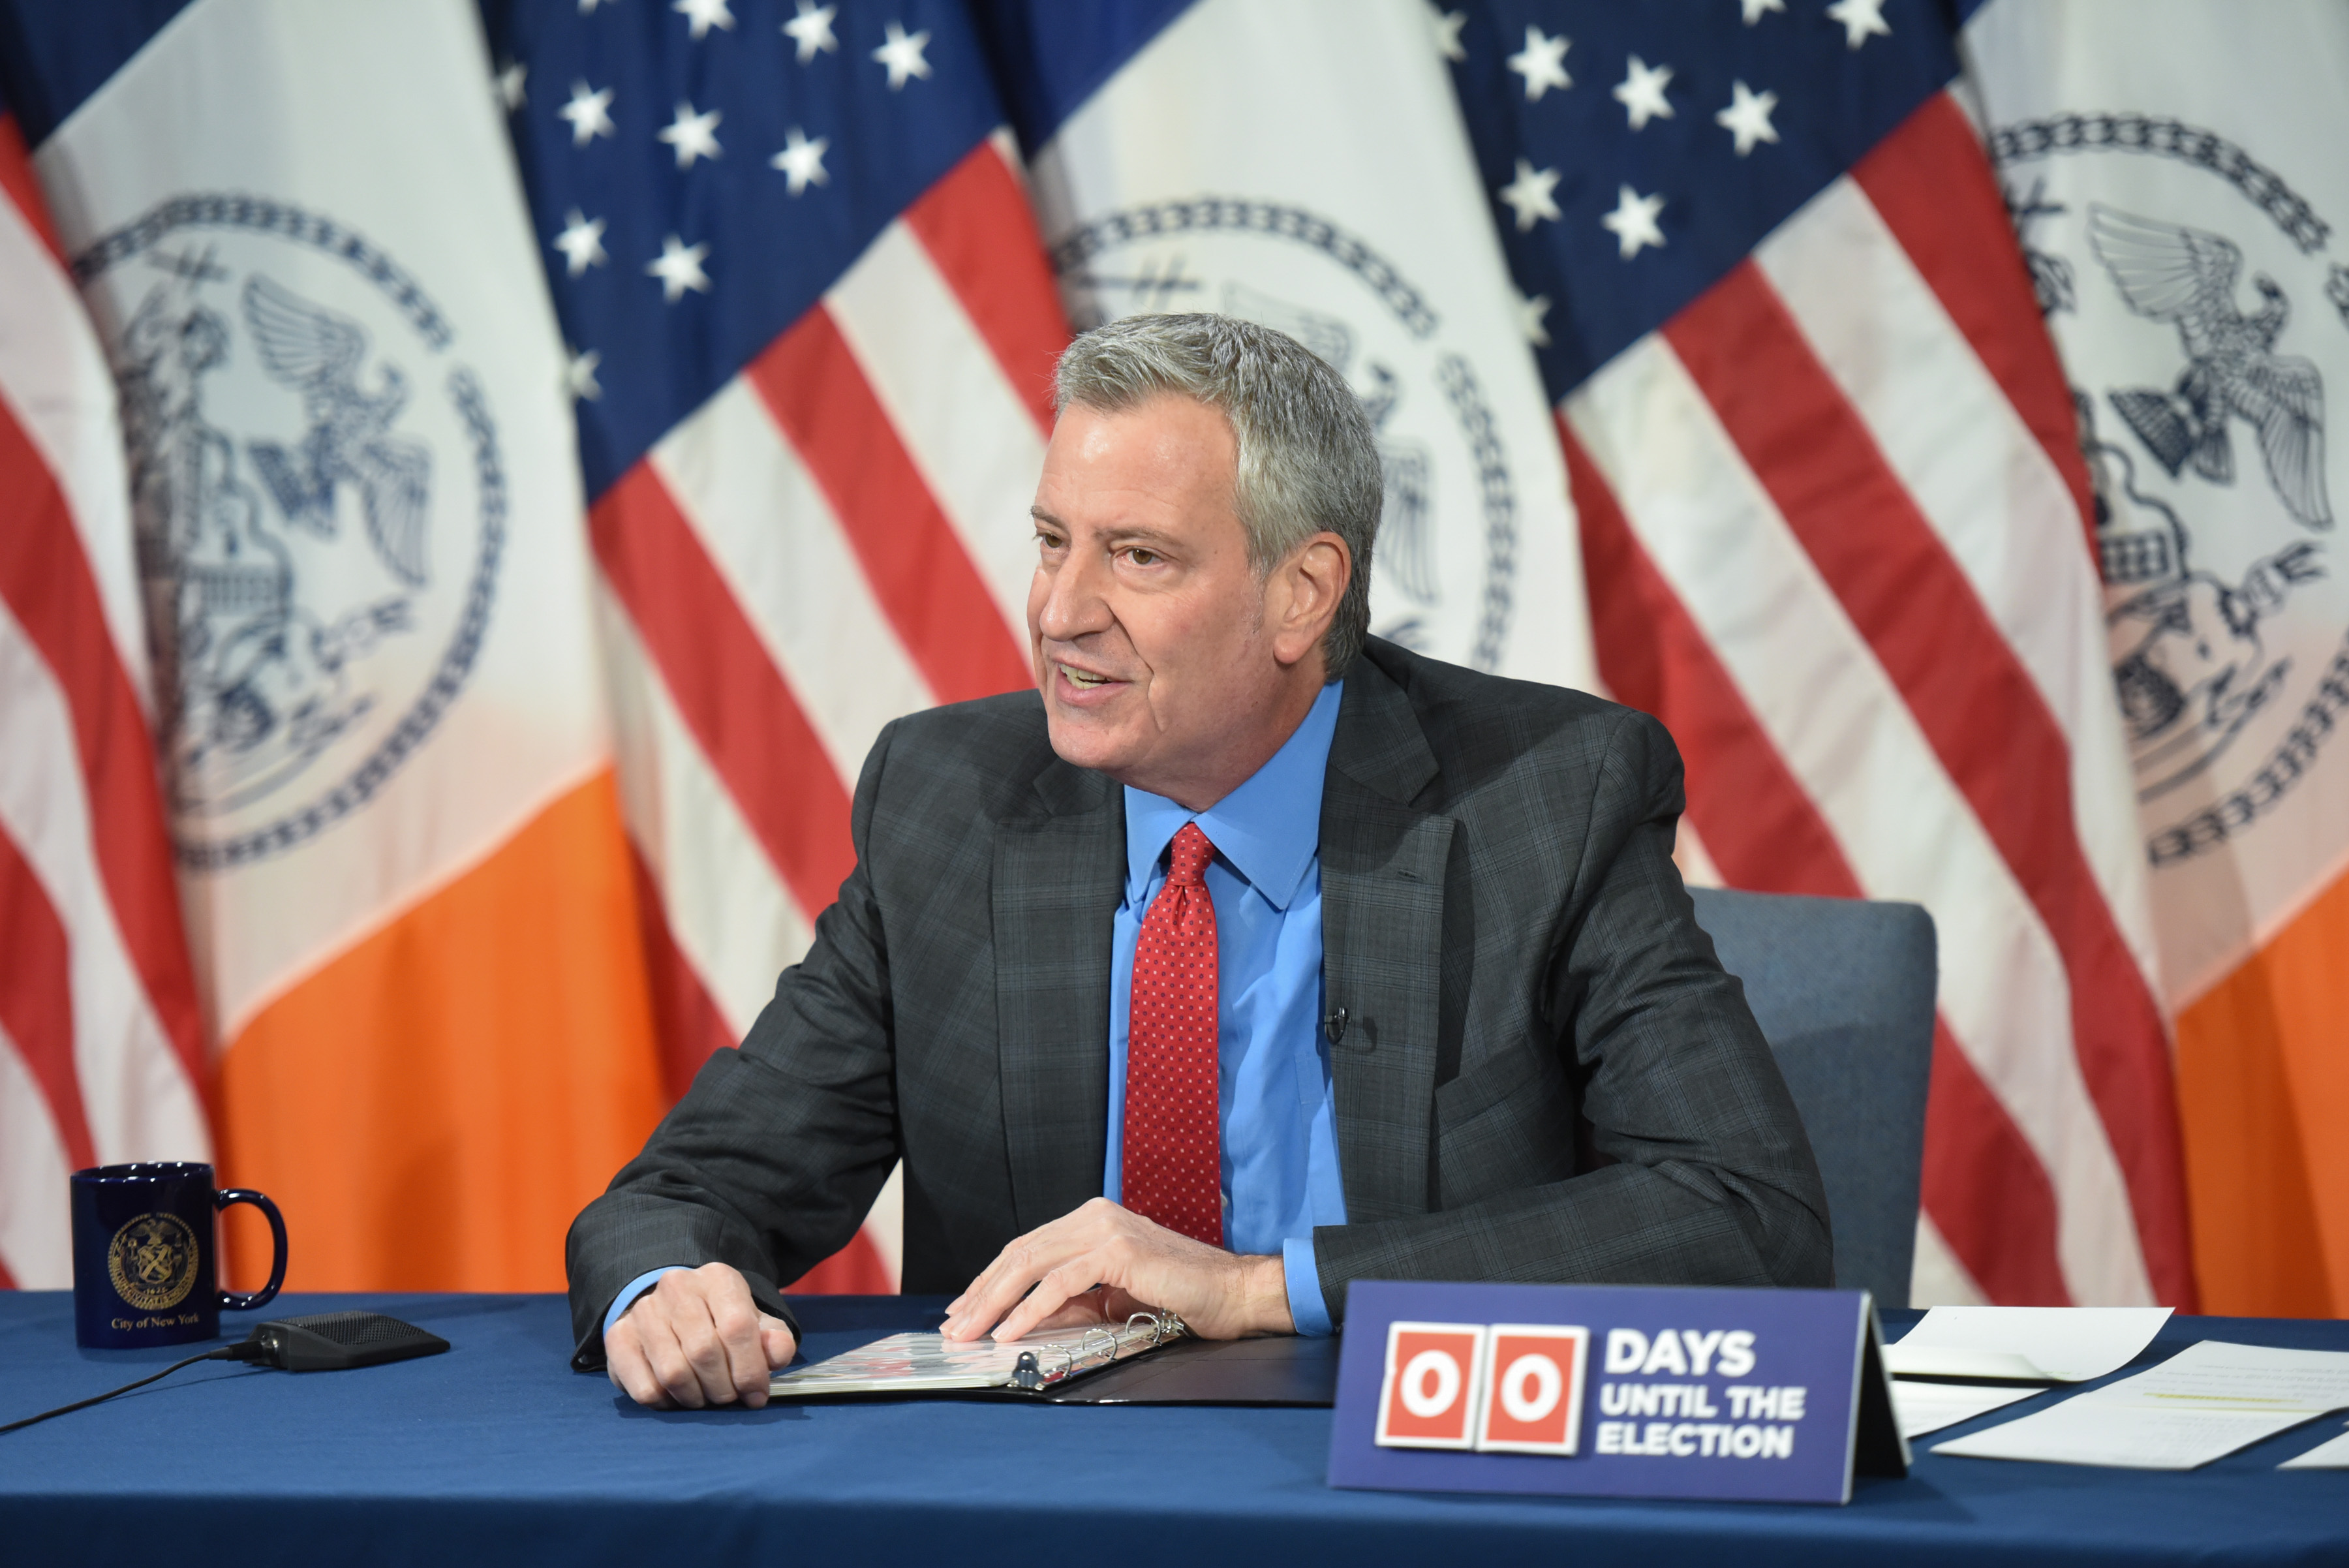 Mayor de Blasio Continues to Characterize All Protests as Peaceful, Despite Evidence to the Contrary